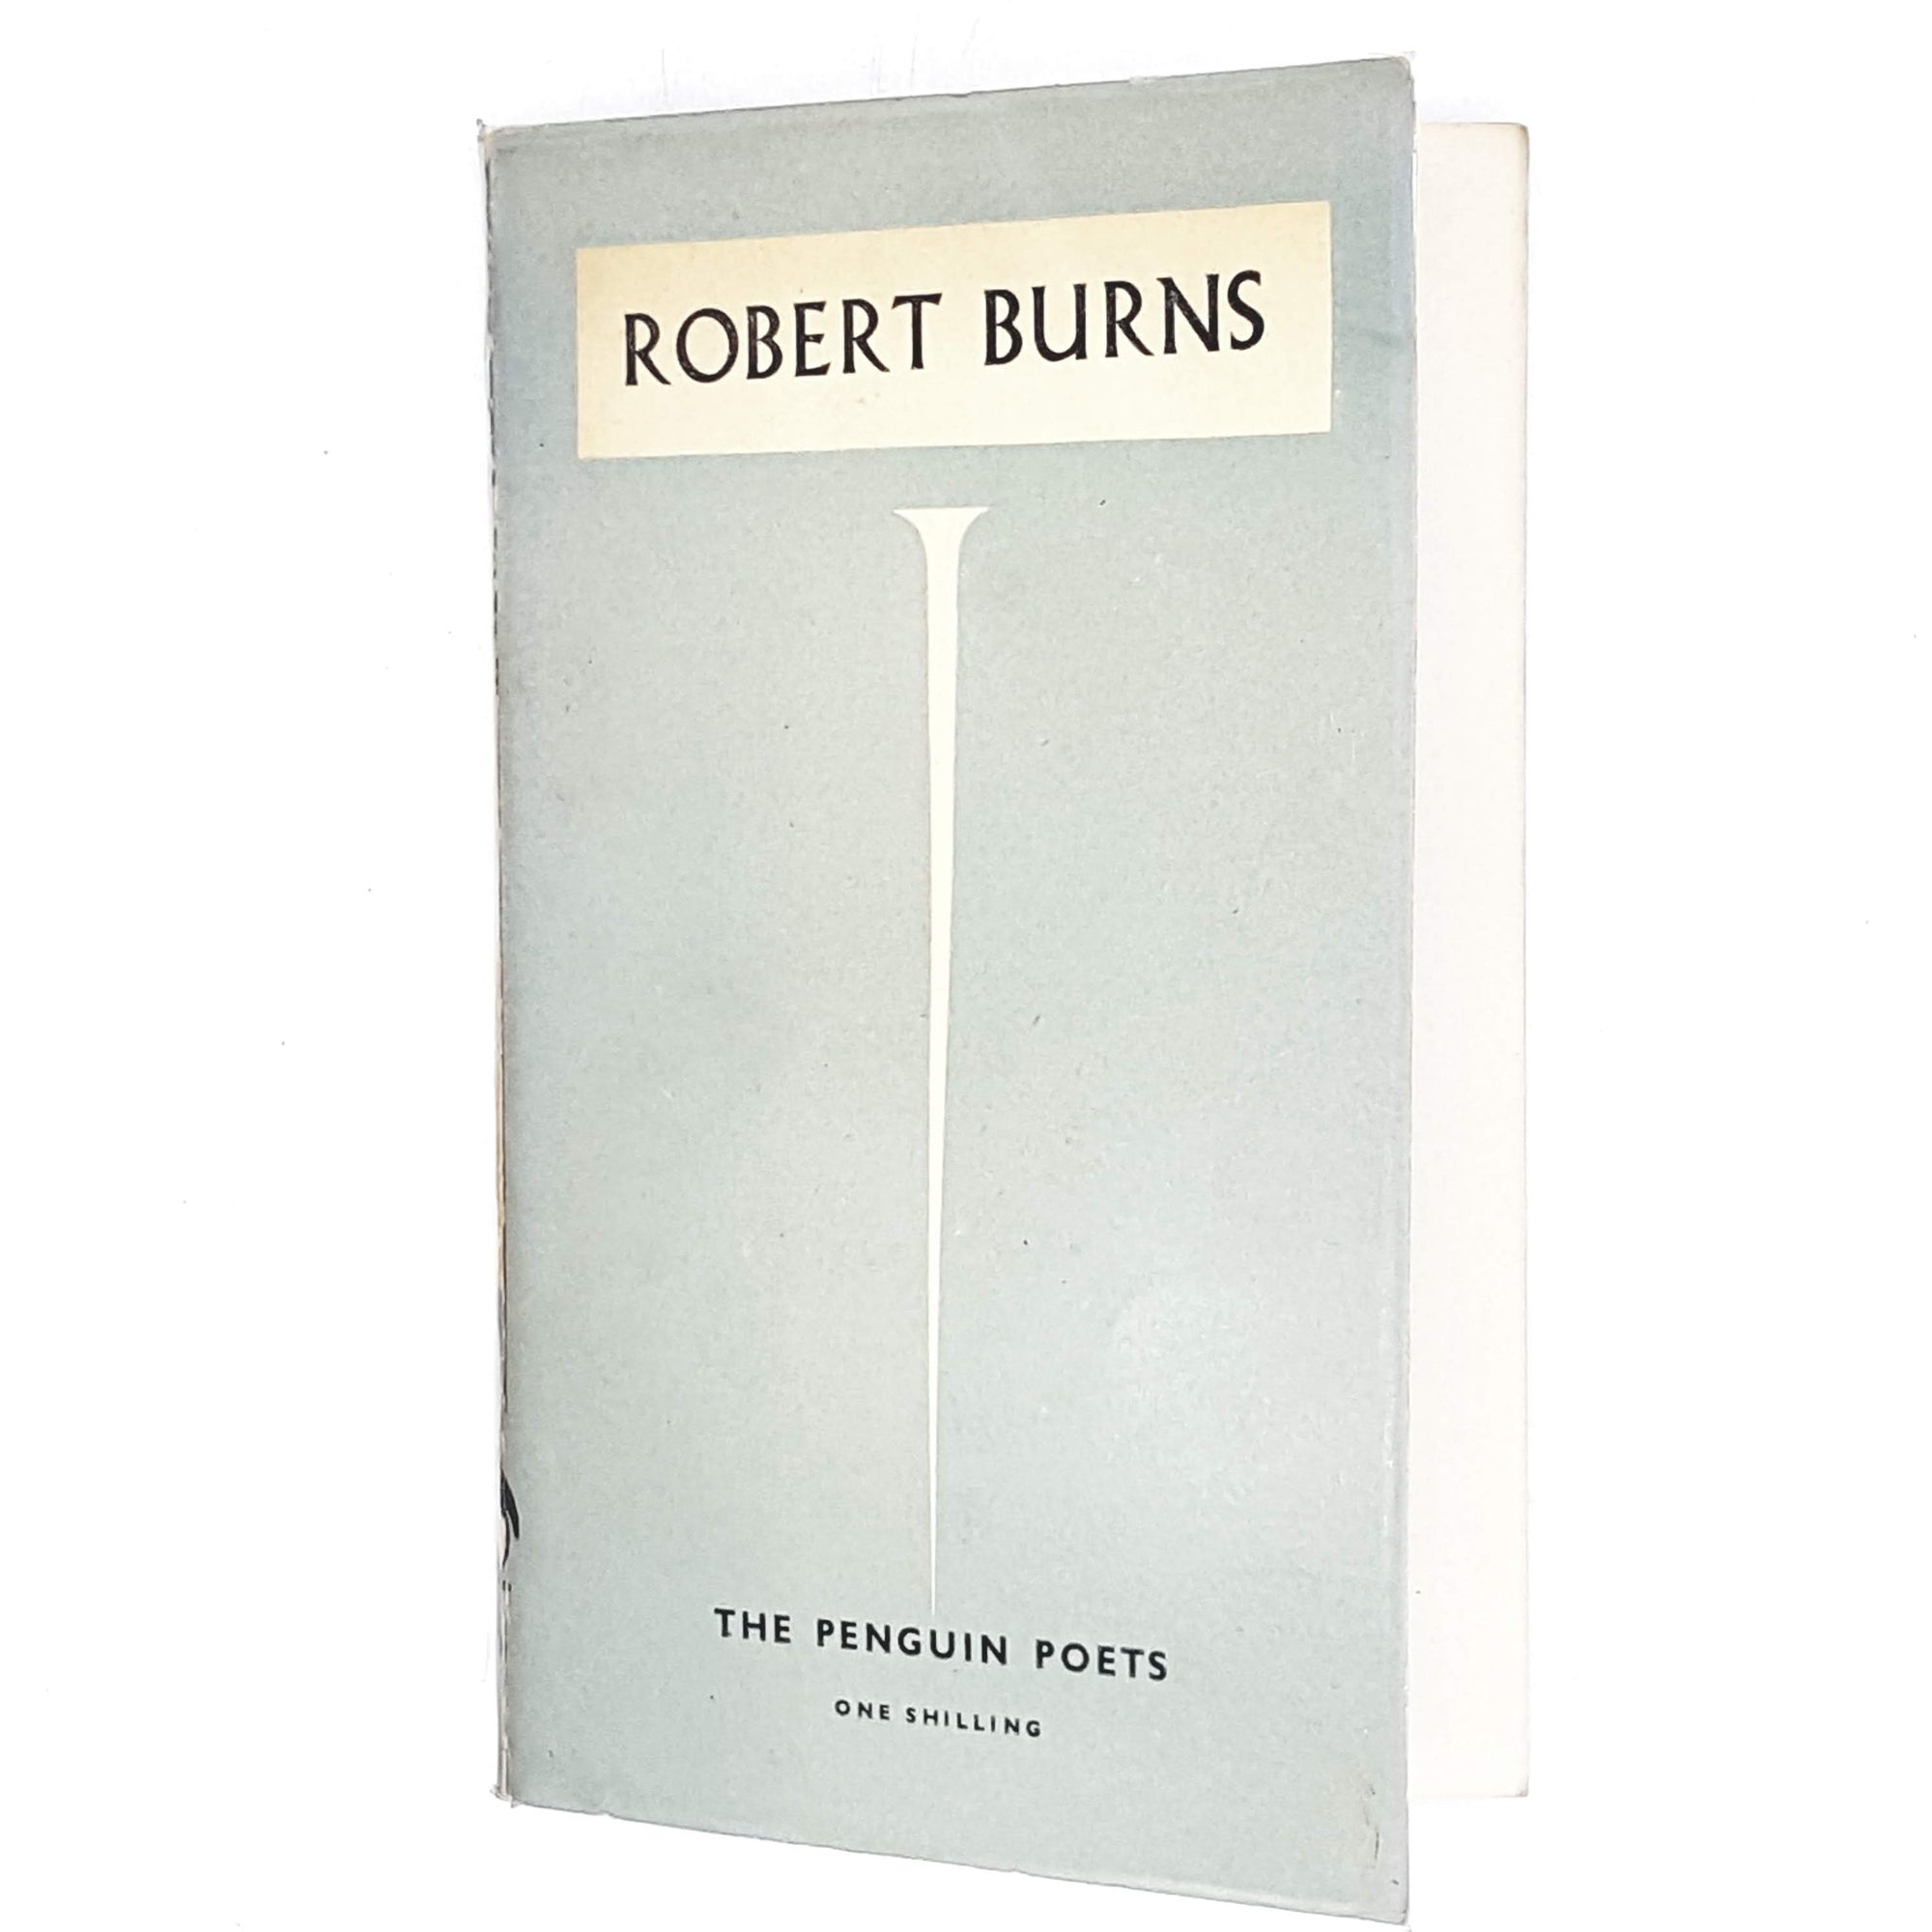 First Edition Penguin: Poetry of Robert Burns 1946